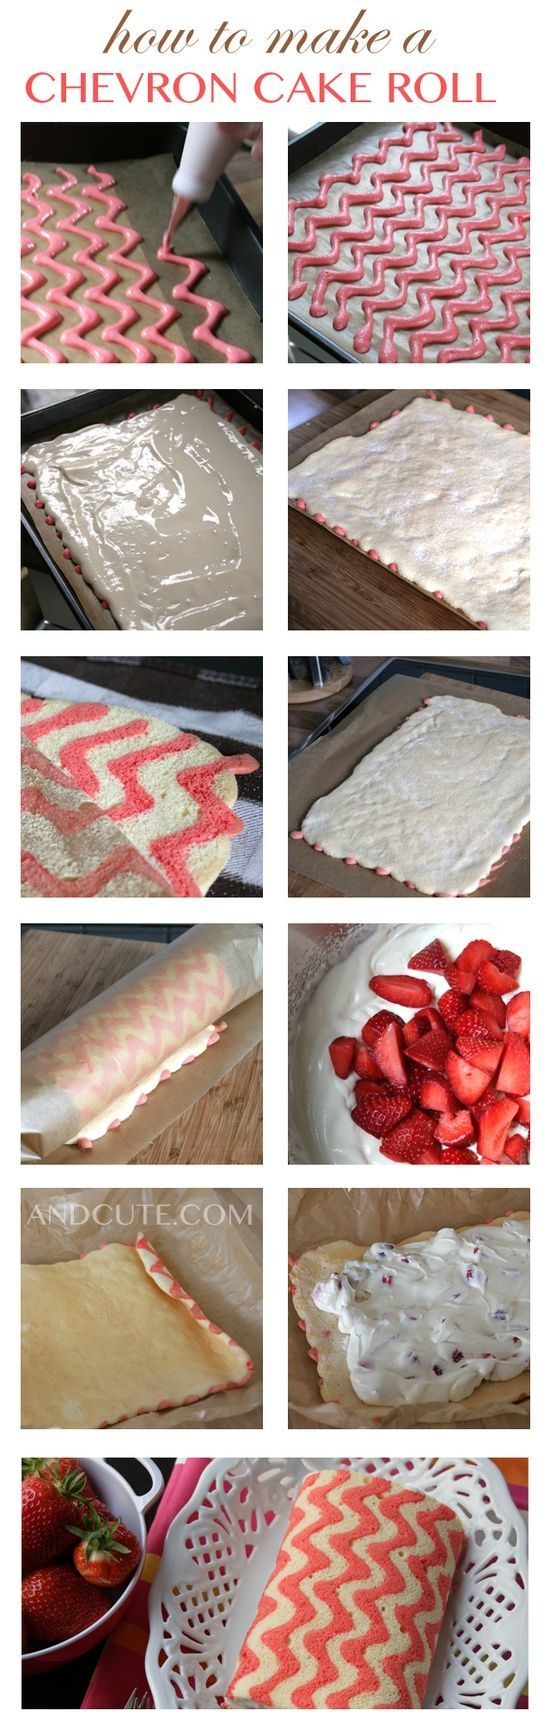 Chevron Cake Roll. So cool!!! i have a cake roll recipe I have been wanting to try...this would make it even more fun!: